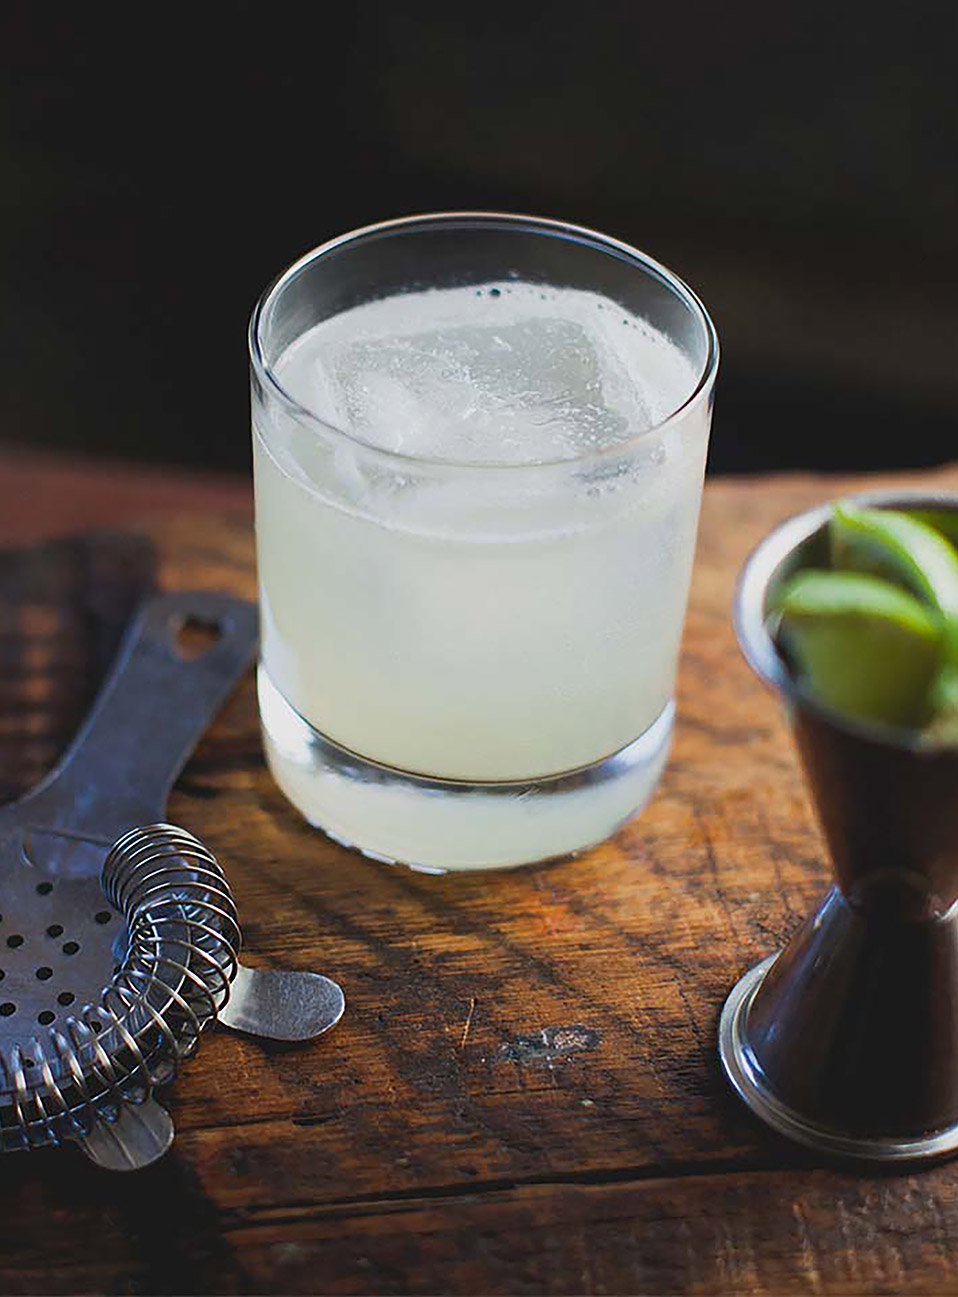 Blanco Margarita drink made with Don Julio Blanco Tequila